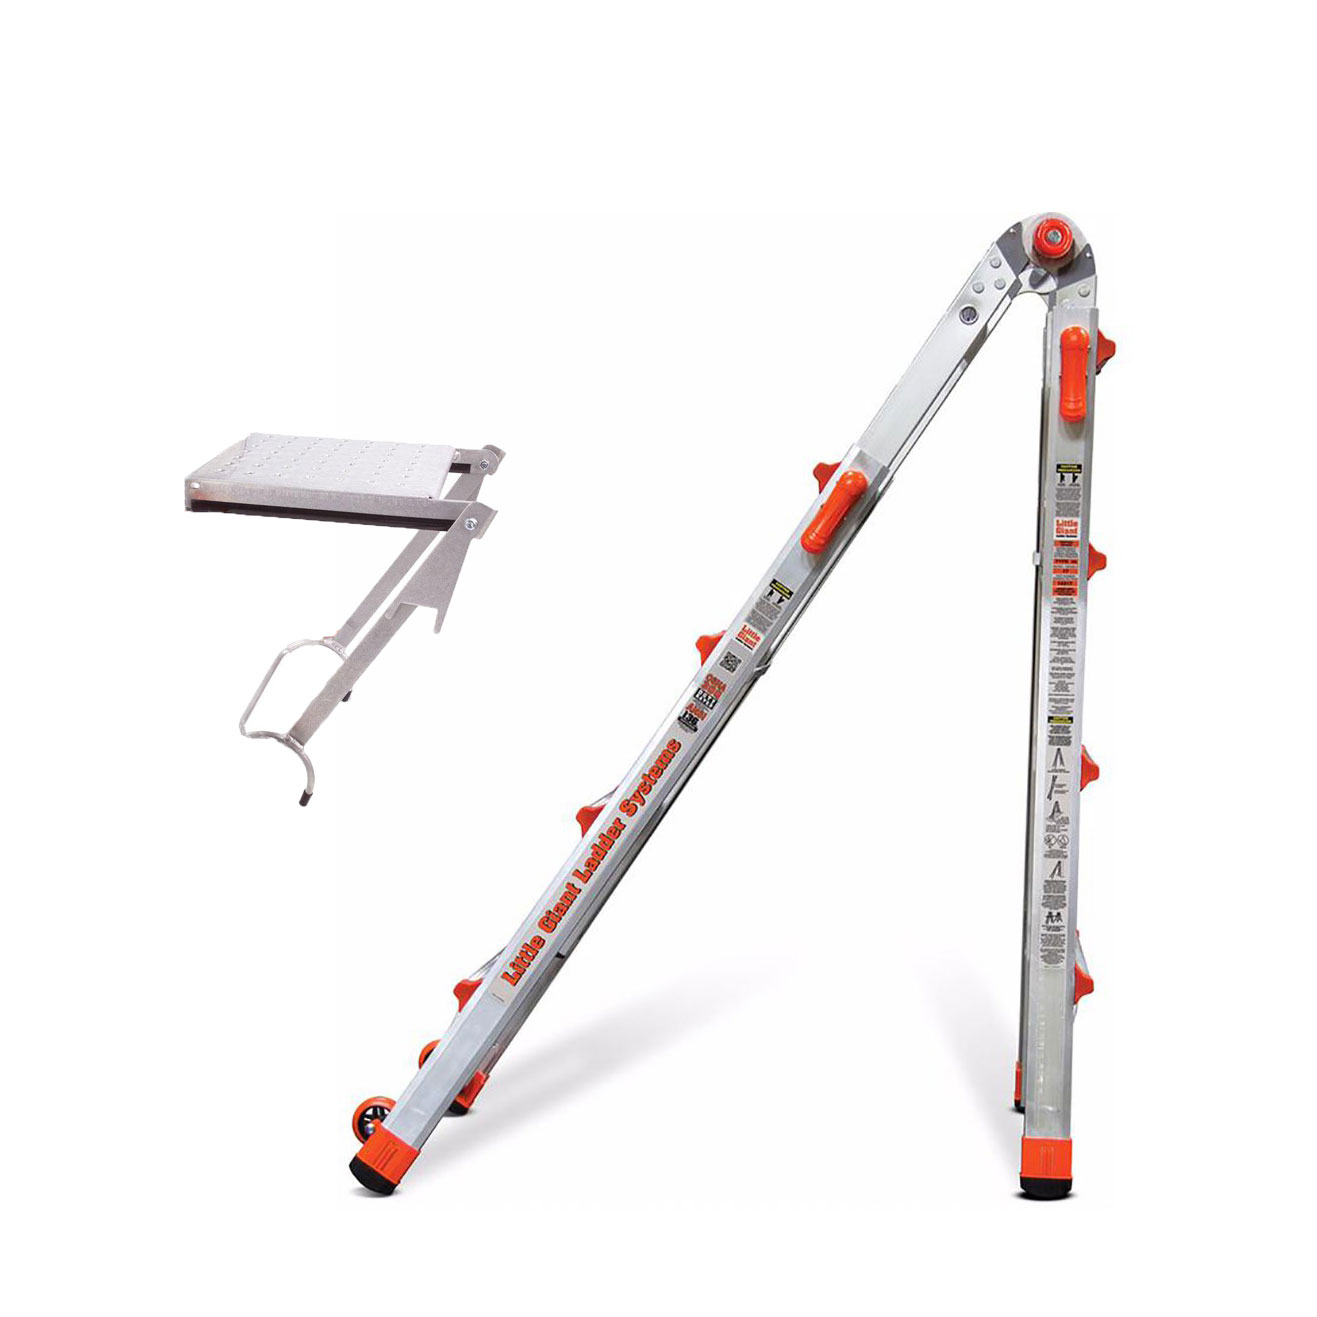 Little Giant Ladder Systems 22 Ft Aluminum Ladder w  375 LB Rated Work Platform by Little Giant Ladder Systems